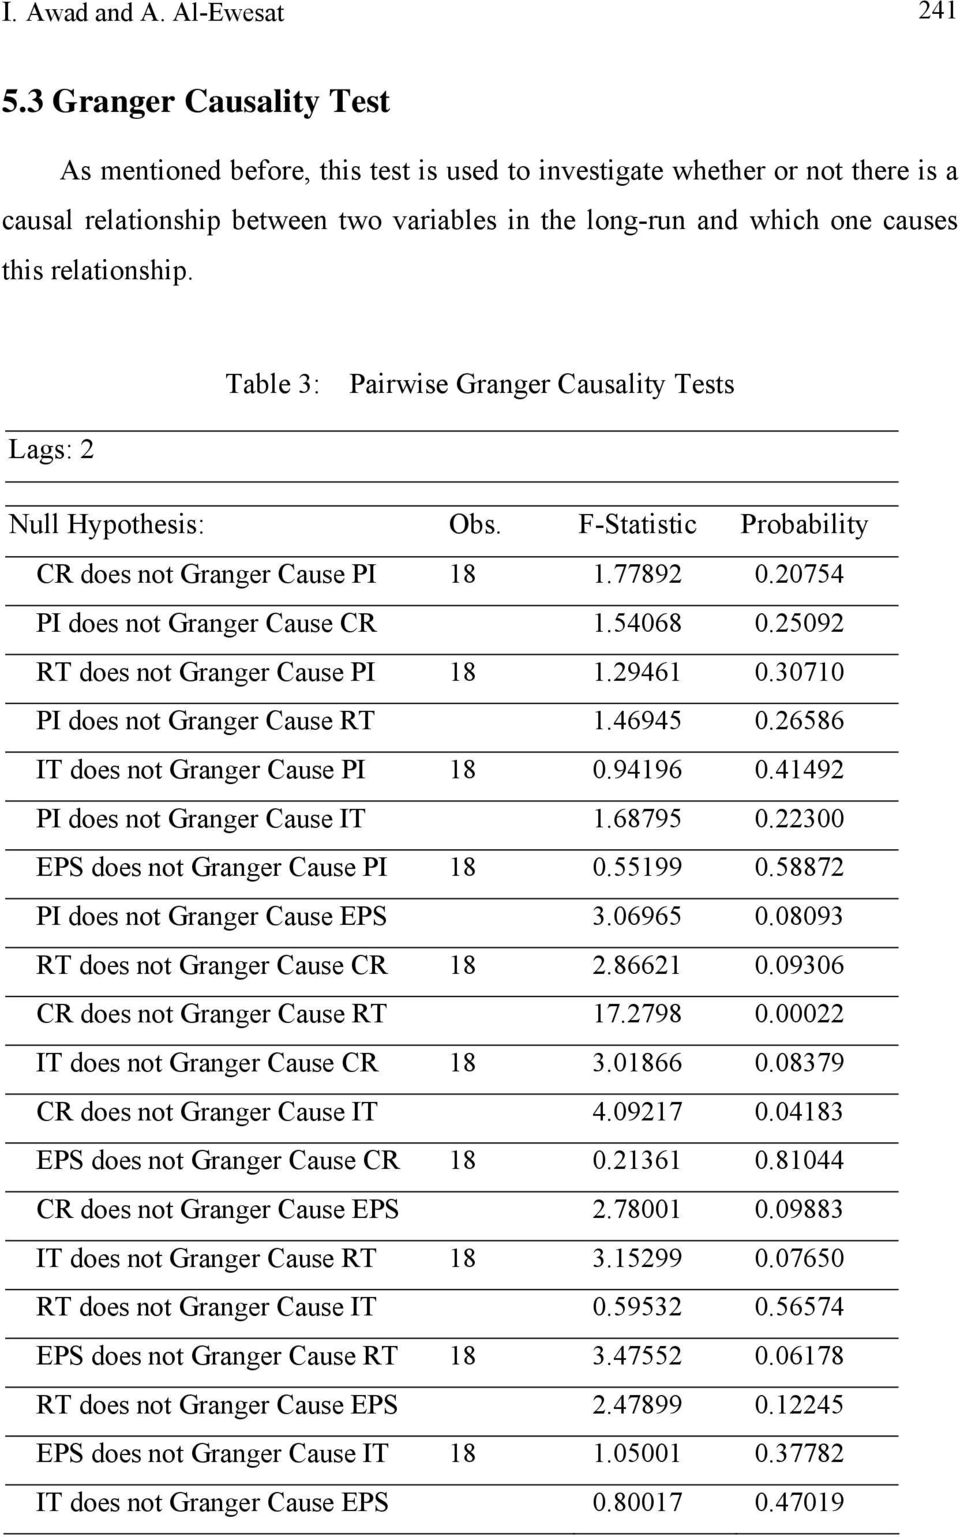 relationship. Table 3: Pairwise Granger Causality Tests Lags: 2 Null Hypothesis: Obs. F-Statistic Probability CR does not Granger Cause PI 18 1.77892 0.20754 PI does not Granger Cause CR 1.54068 0.